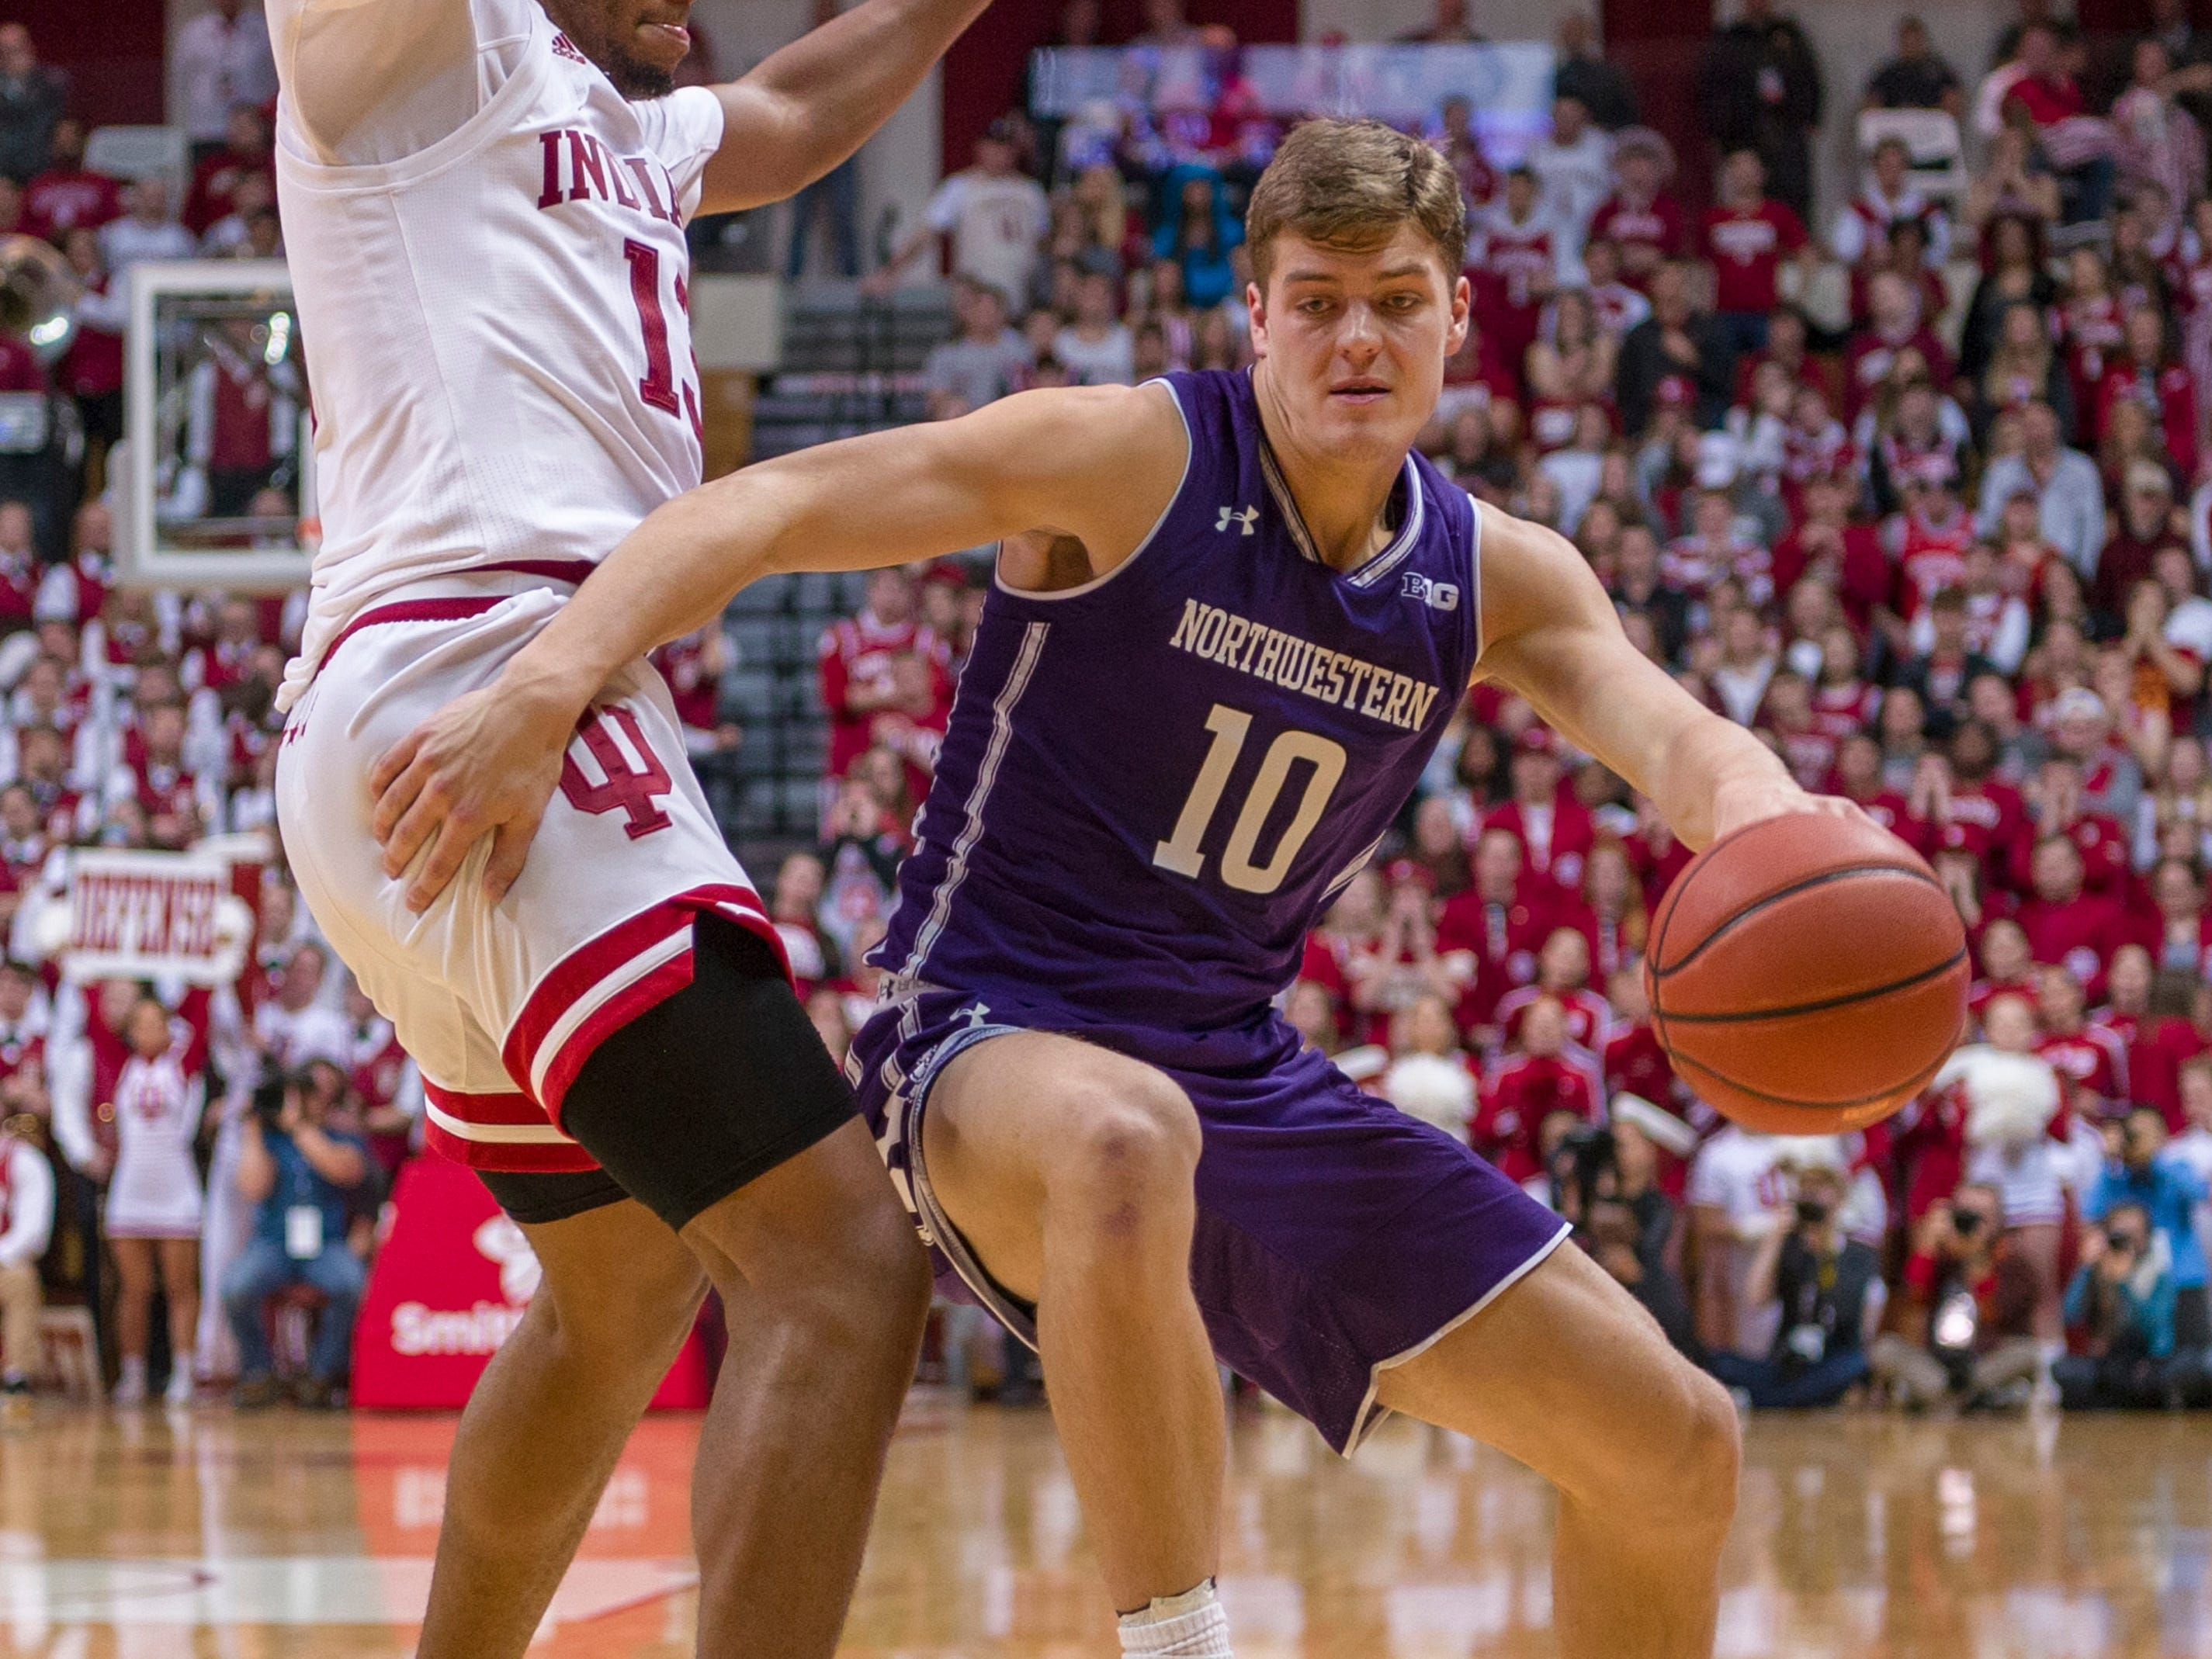 Northwestern forward Miller Kopp (10) makes a move around the defense of Indiana forward Juwan Morgan (13) during the first half of an NCAA college basketball game Saturday, Dec. 1, 2018, in Bloomington, Ind. (AP Photo/Doug McSchooler)